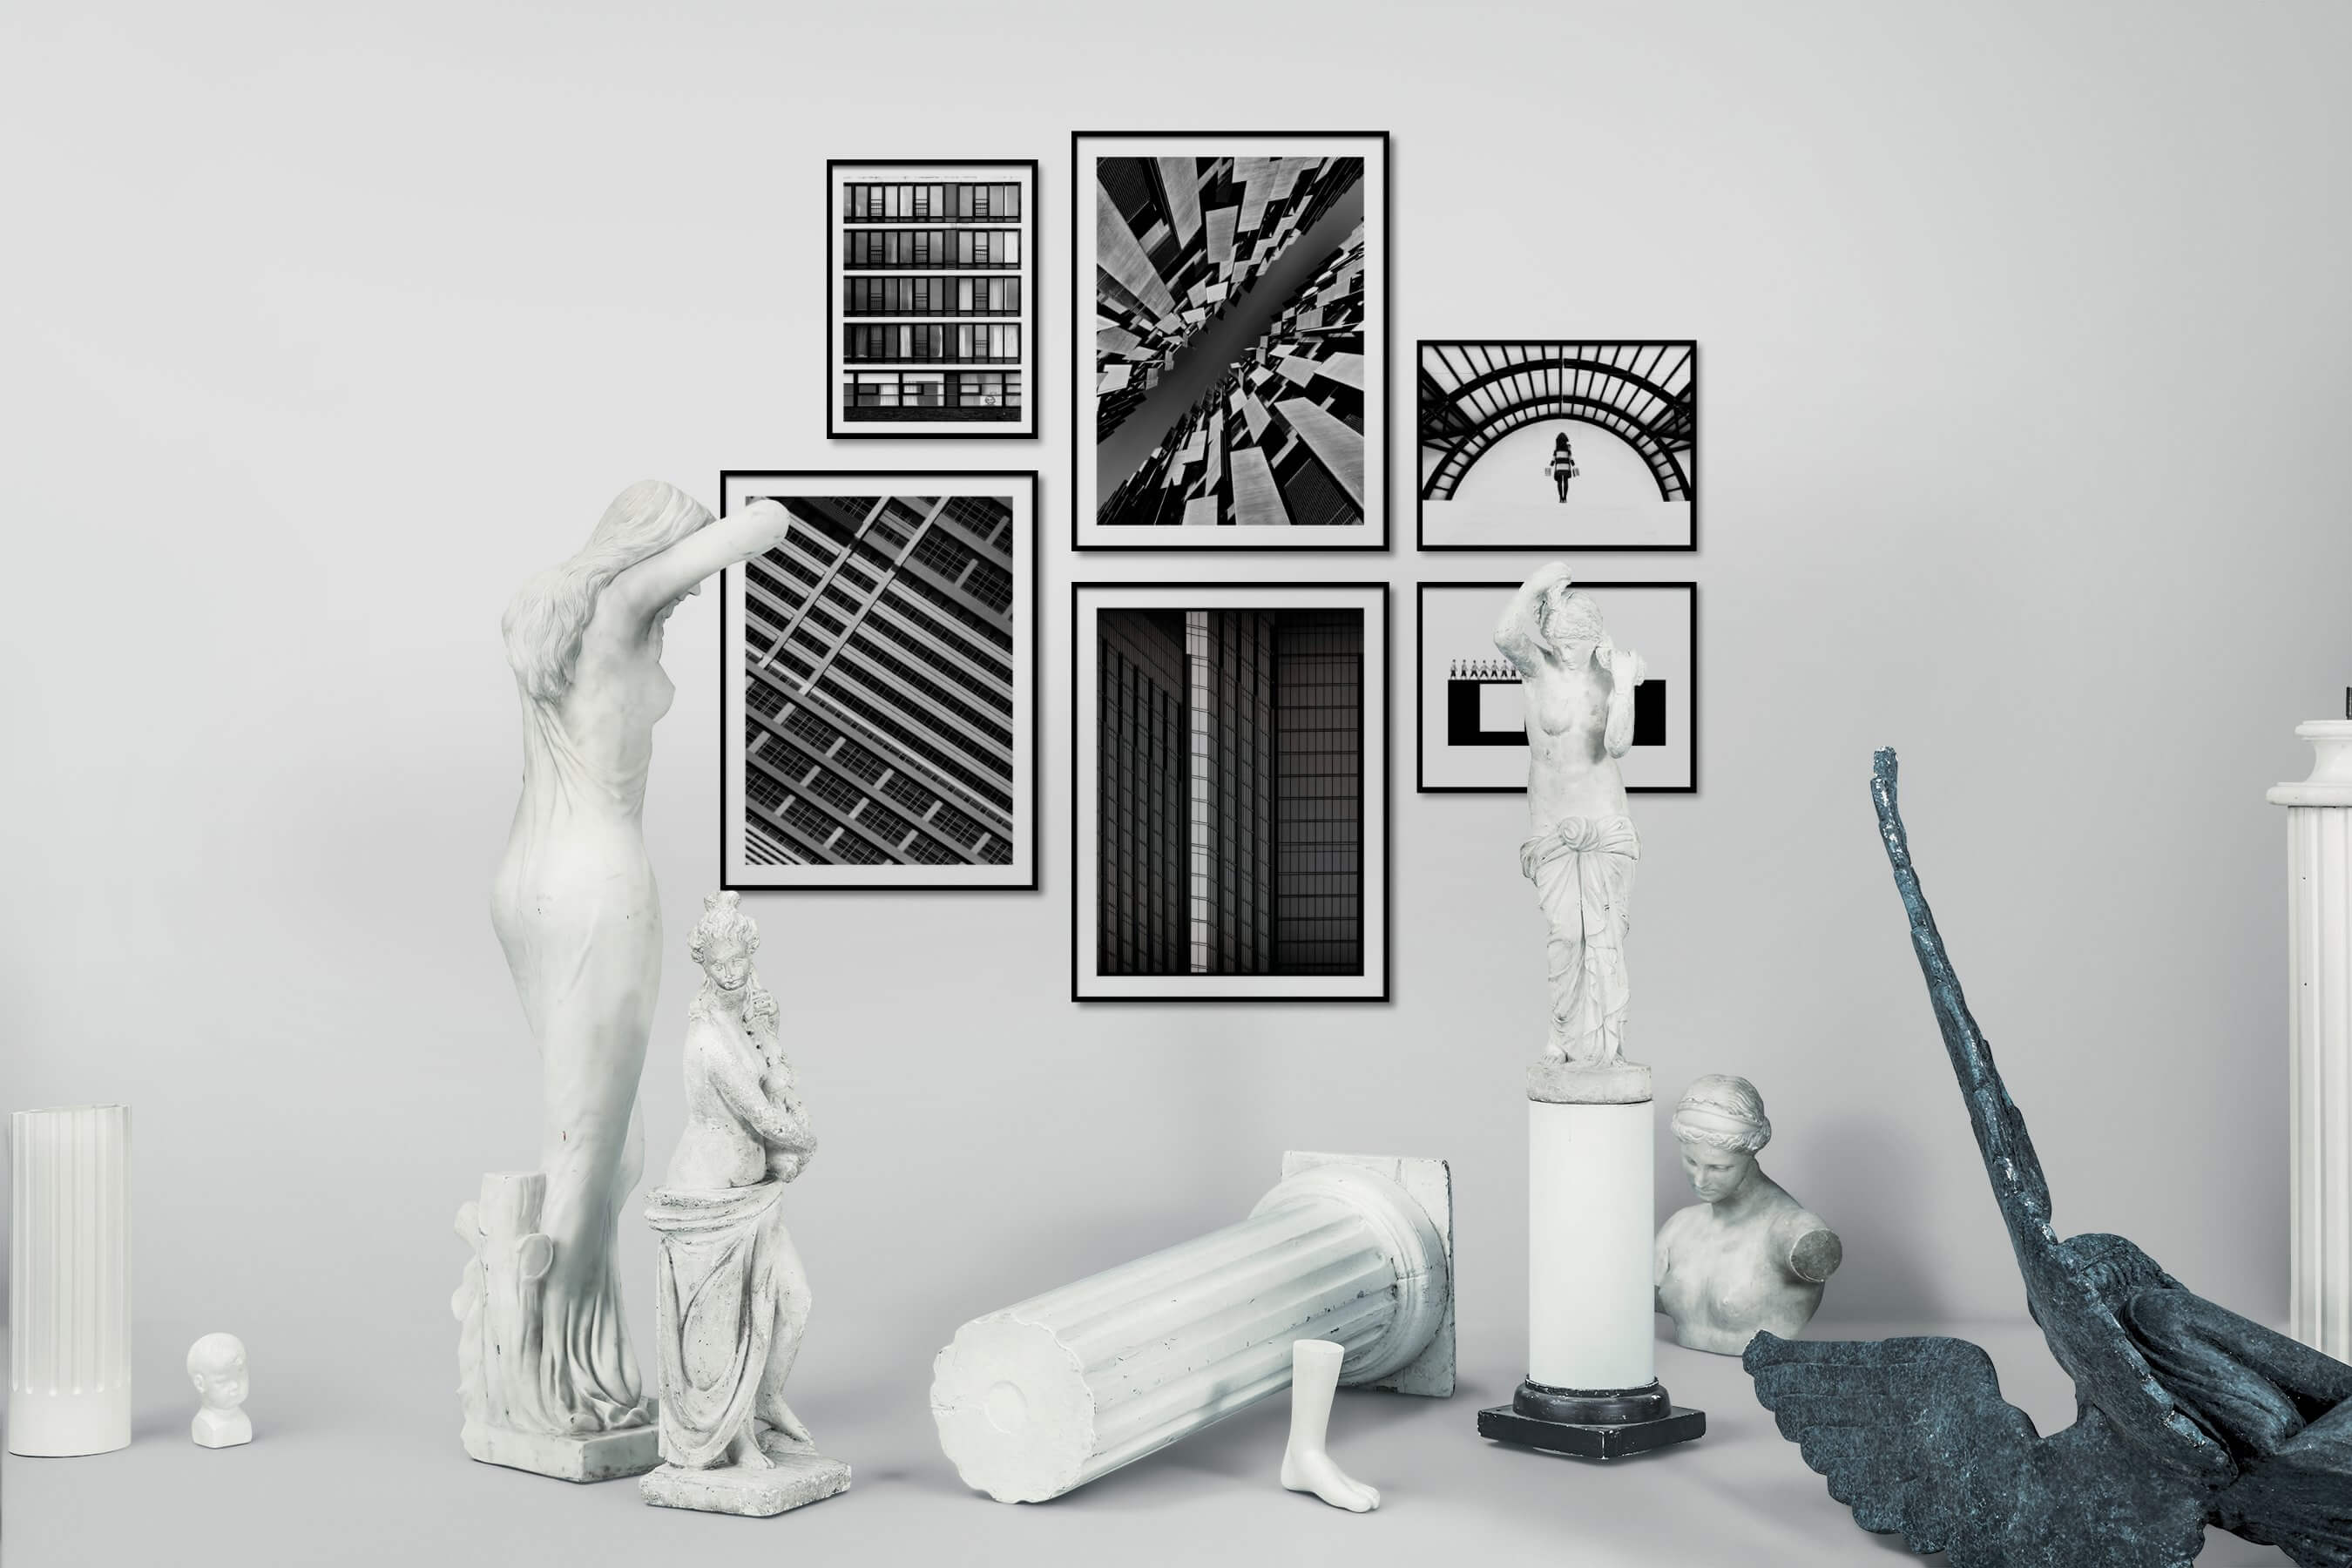 Gallery wall idea with six framed pictures arranged on a wall depicting Black & White, For the Moderate, City Life, For the Maximalist, Artsy, and For the Minimalist